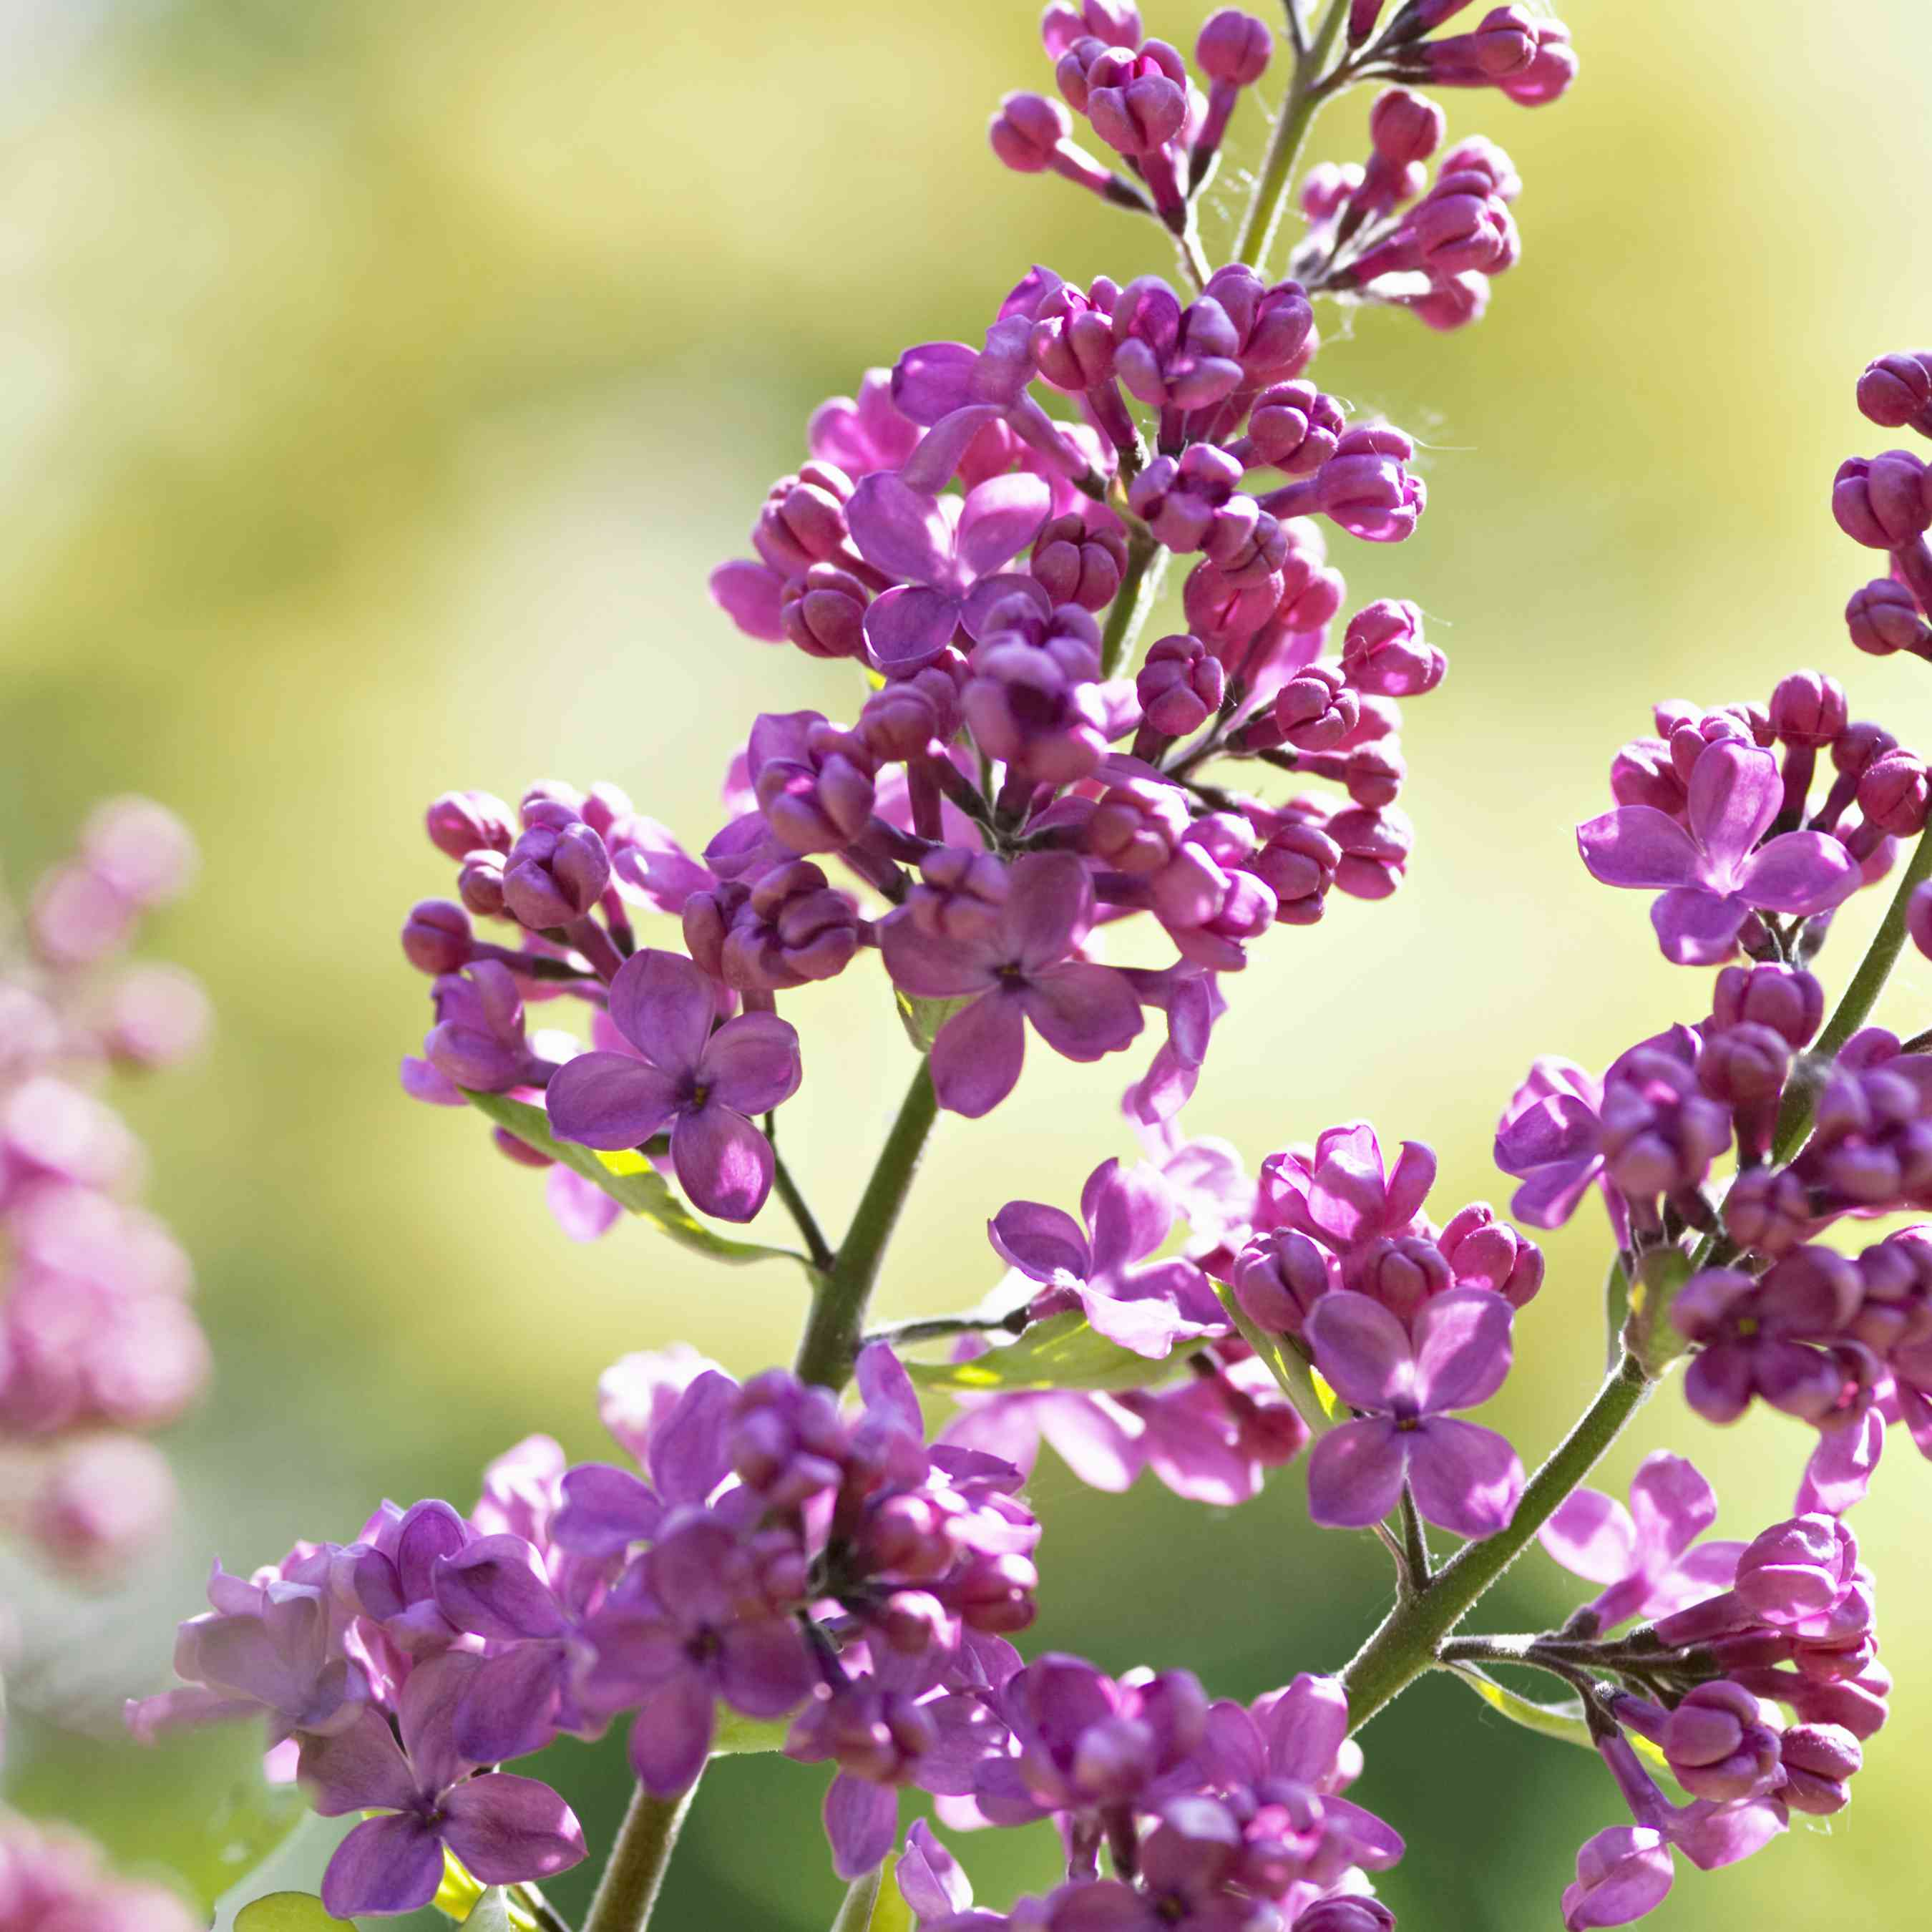 The Charles Joly lilac with pink blooms